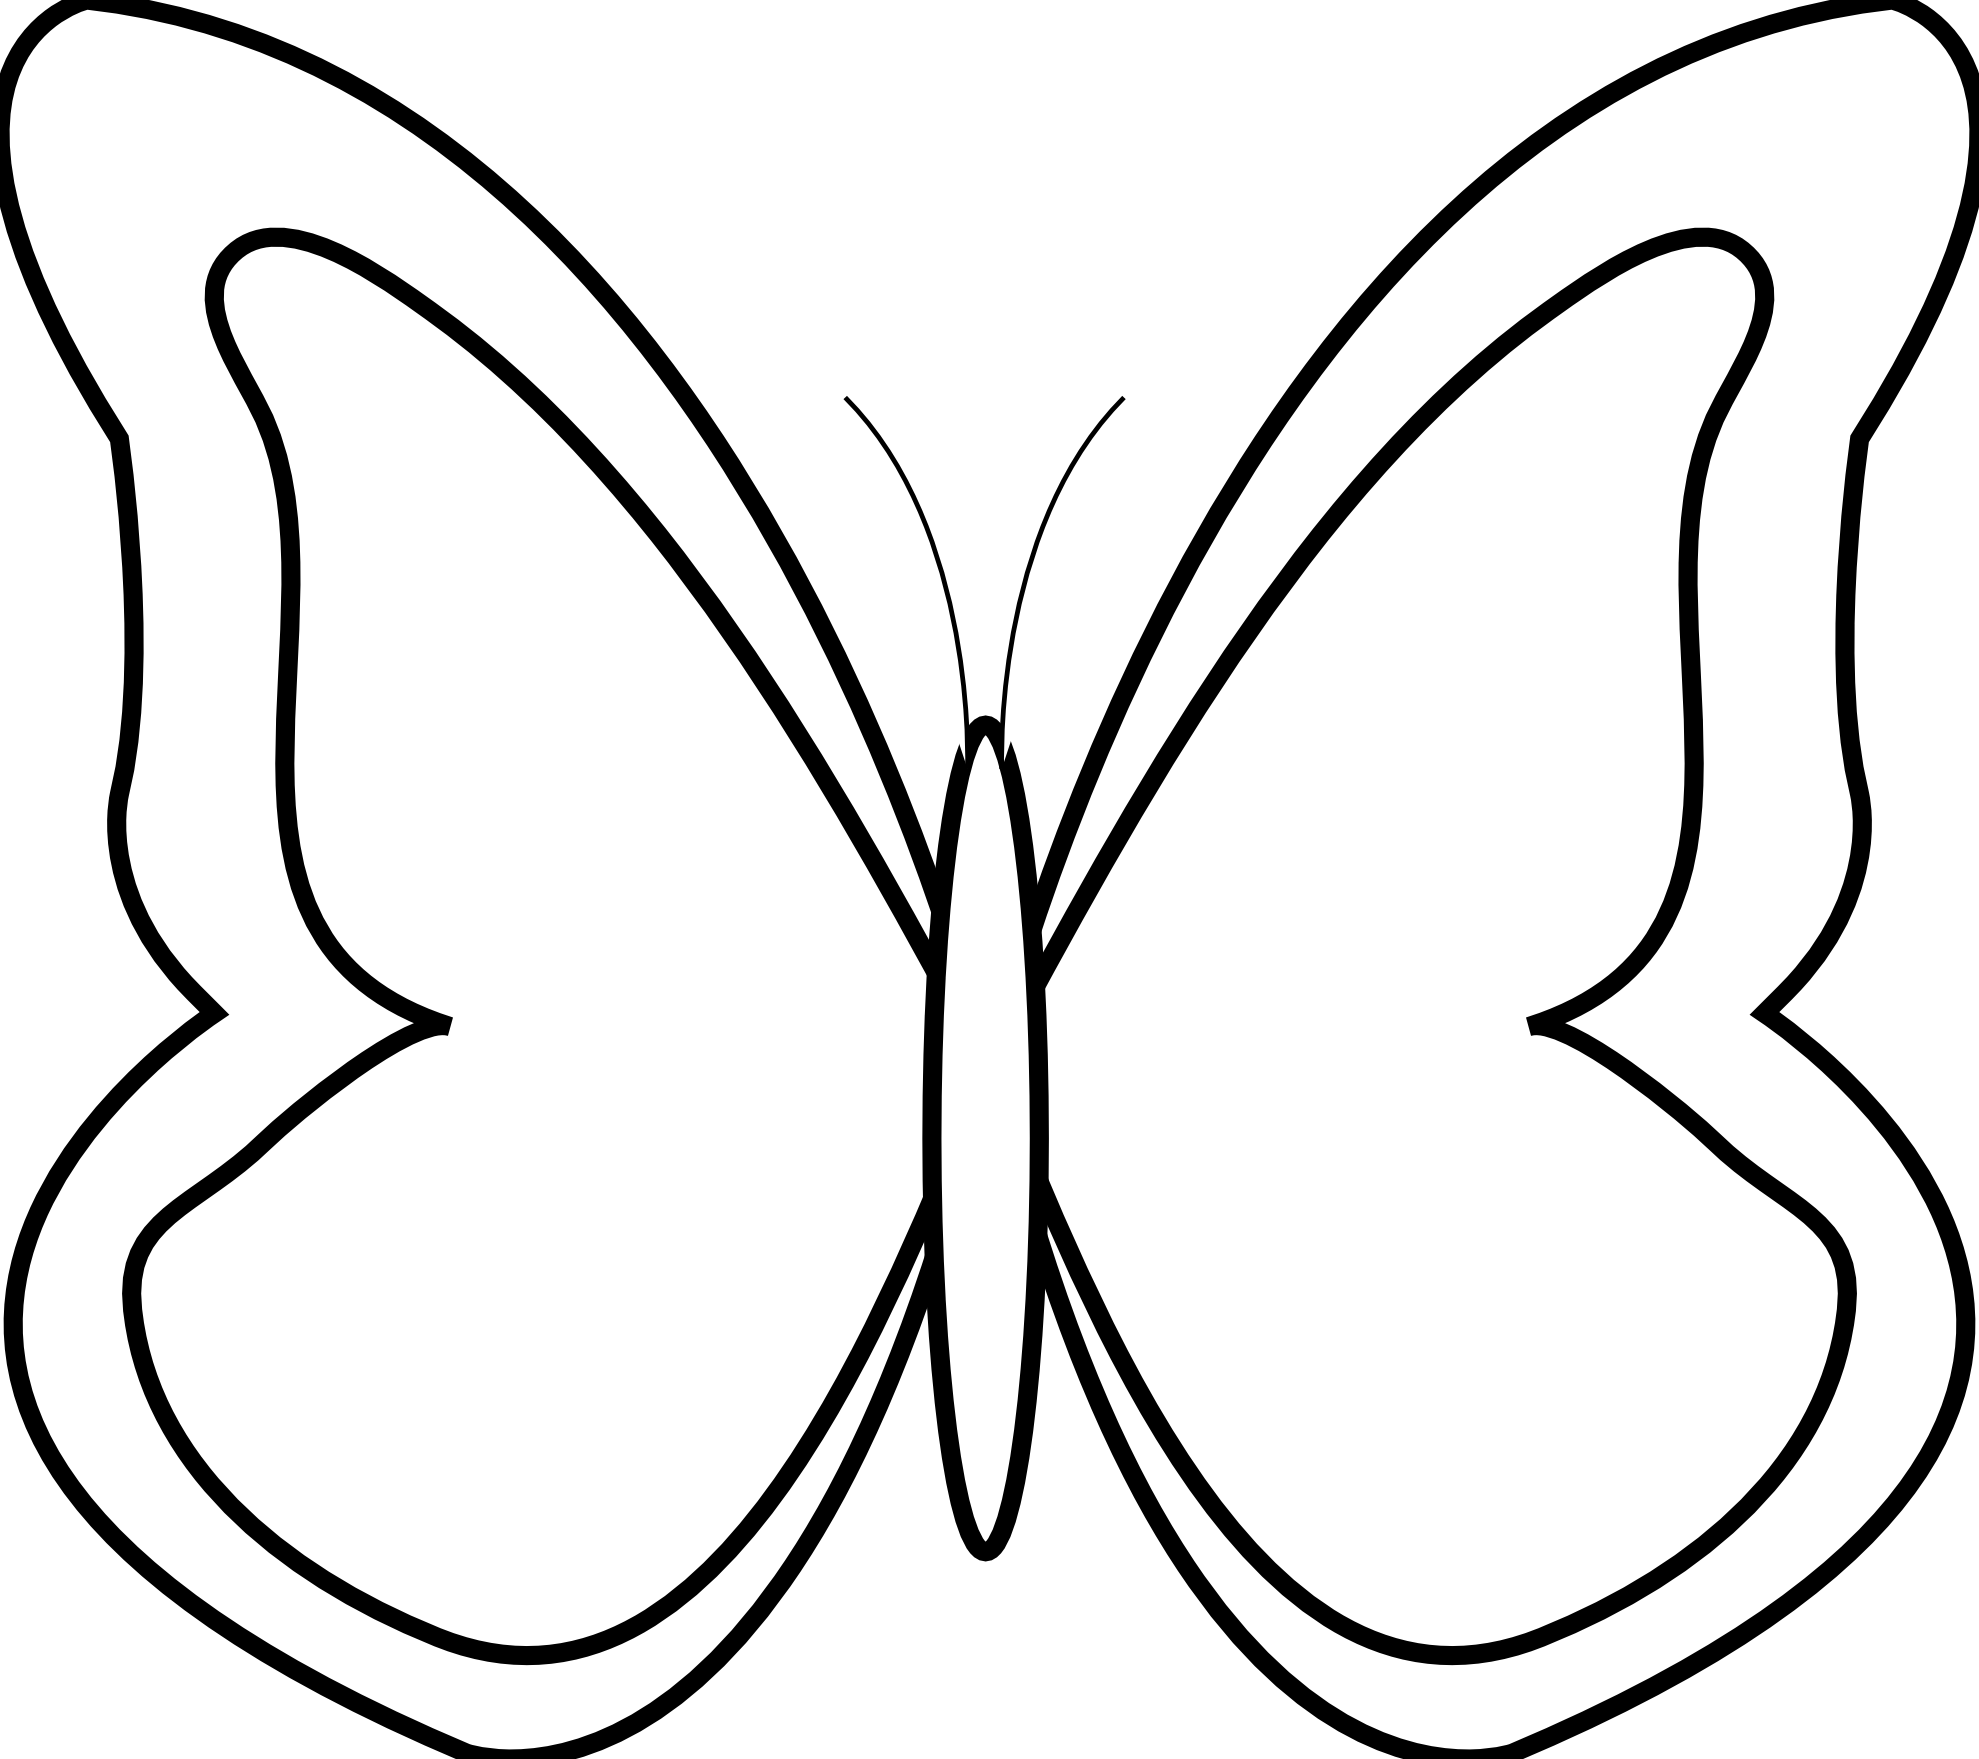 clipart stock Milk black and white clipart. Butterfly design cute free